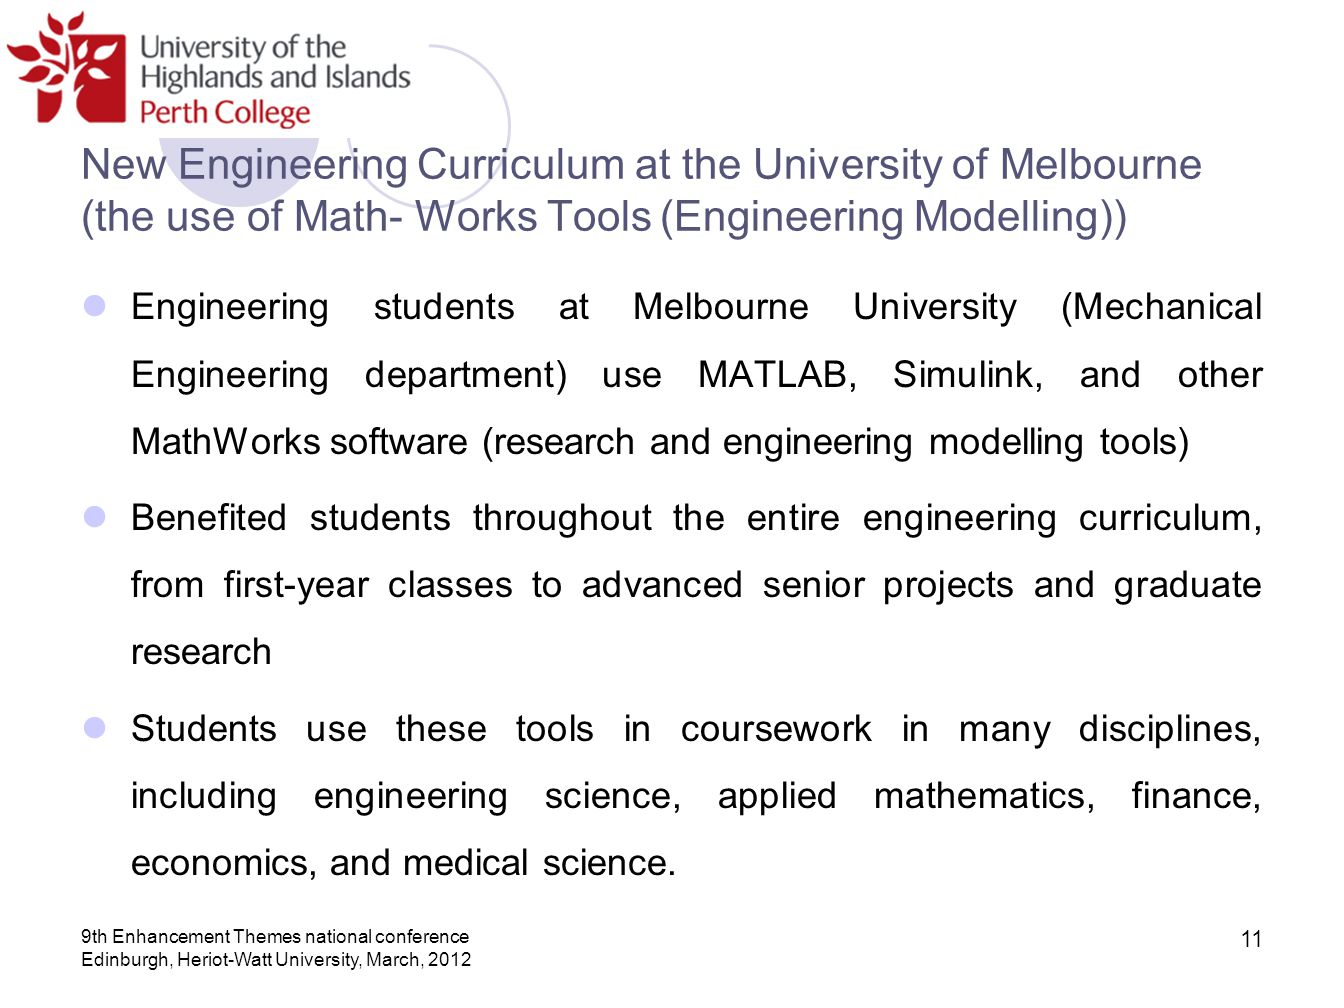 New Engineering Curriculum at the University of Melbourne (the use of Math- Works Tools (Engineering Modelling))